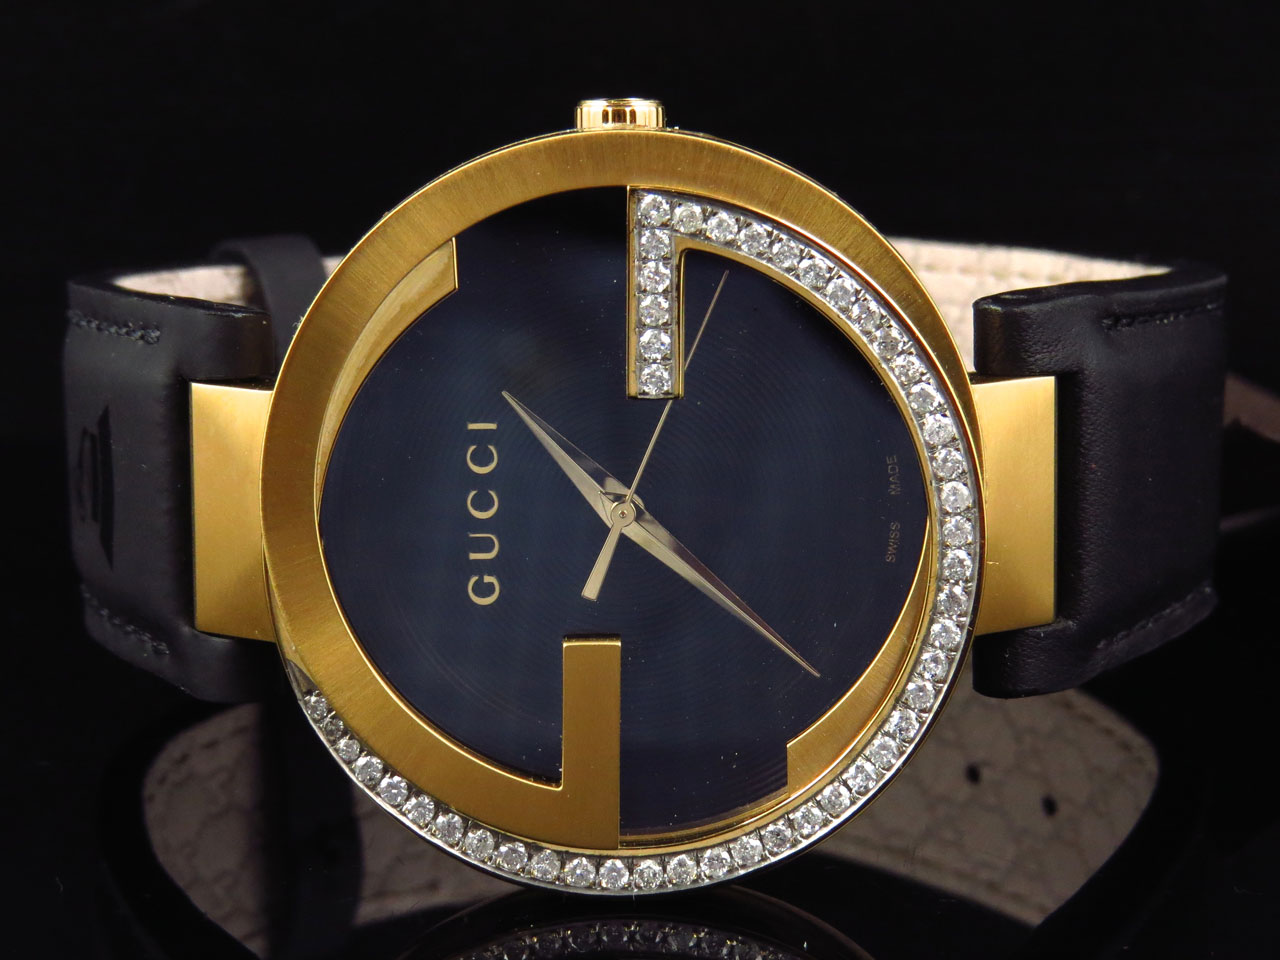 914a89bab11 Gucci - Mens Interlocking GG Diamond Watch YA133212 (1.25 ct) - Walmart.com